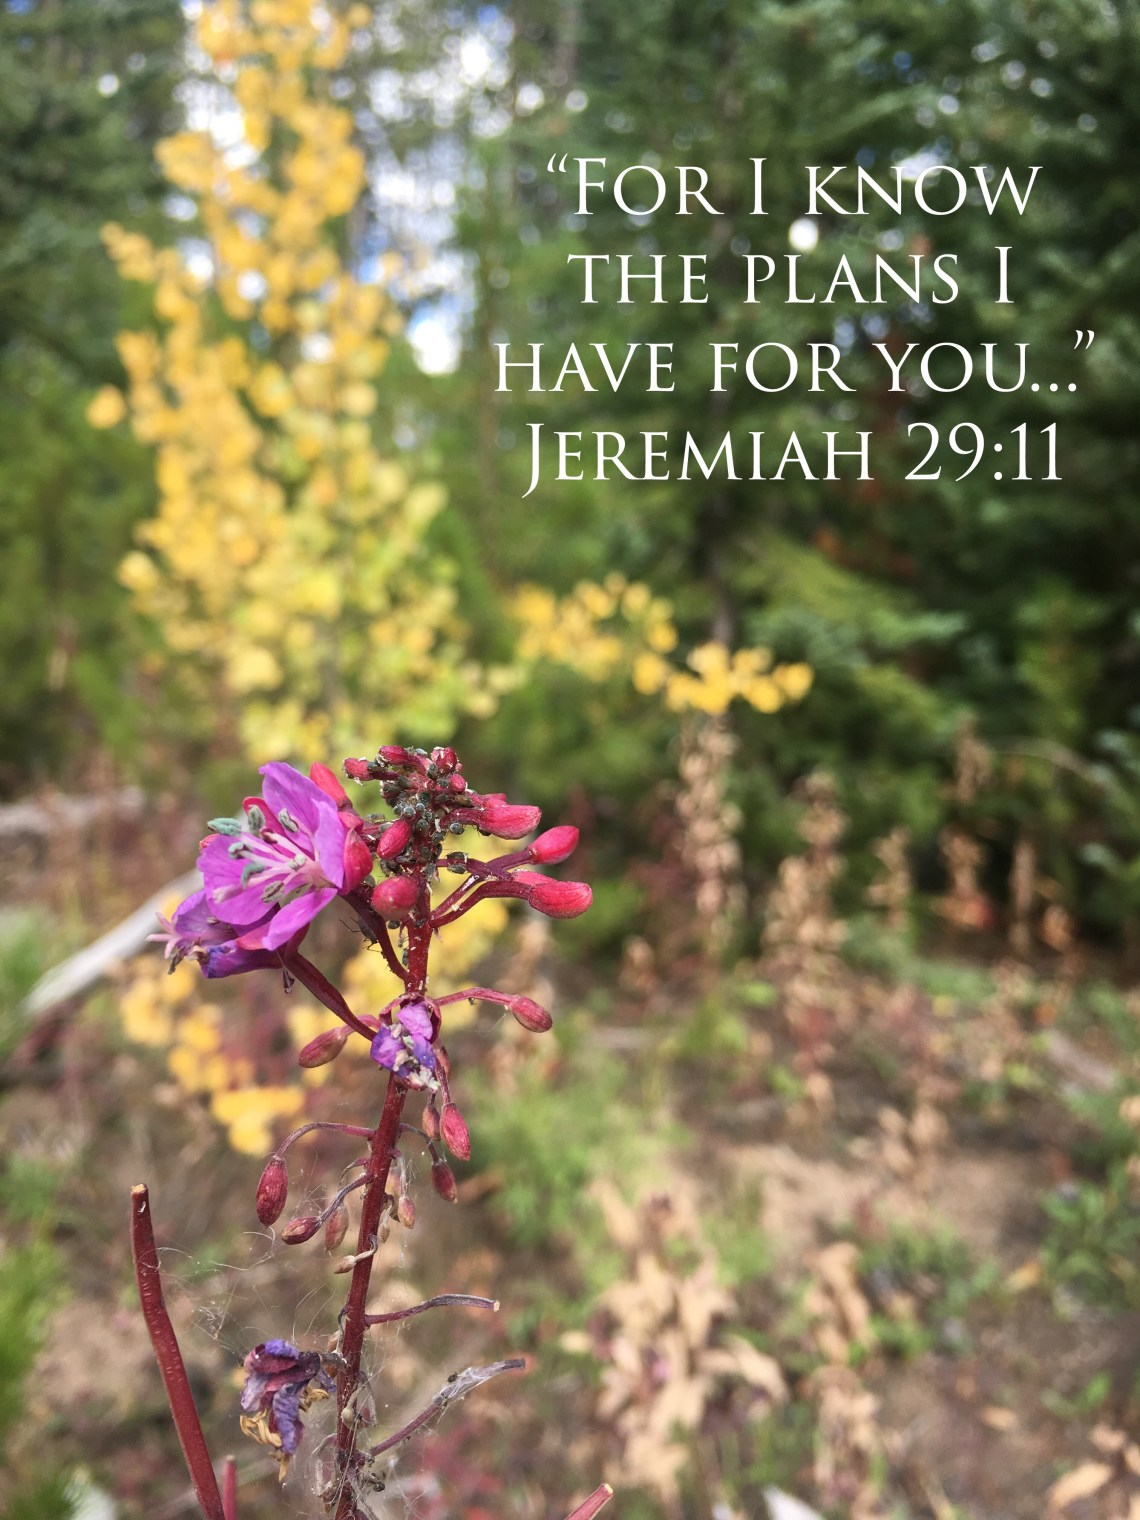 Our Boy Life | Jeremy 29:11